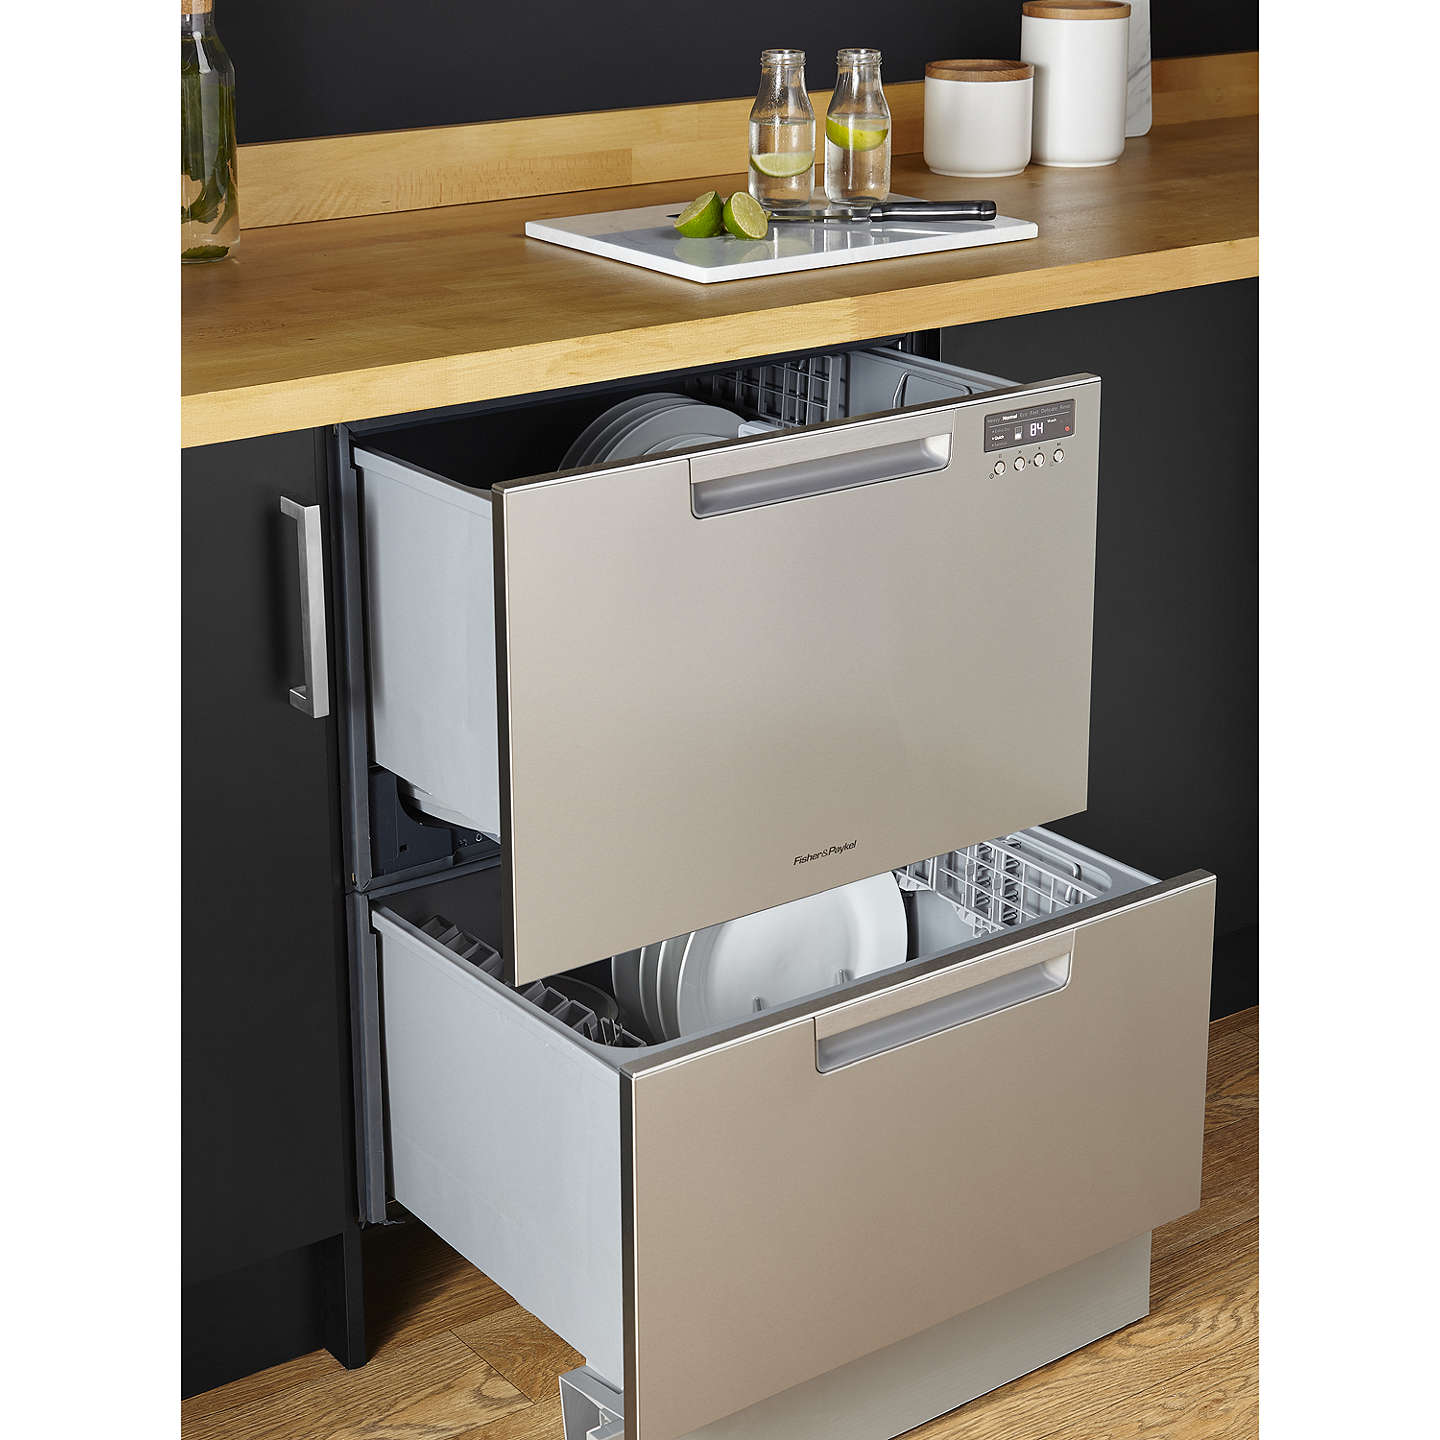 BuyFisher & Paykel DD60DCHX9 Double DishDrawer Built-In Dishwasher, Stainless Steel Online at johnlewis.com